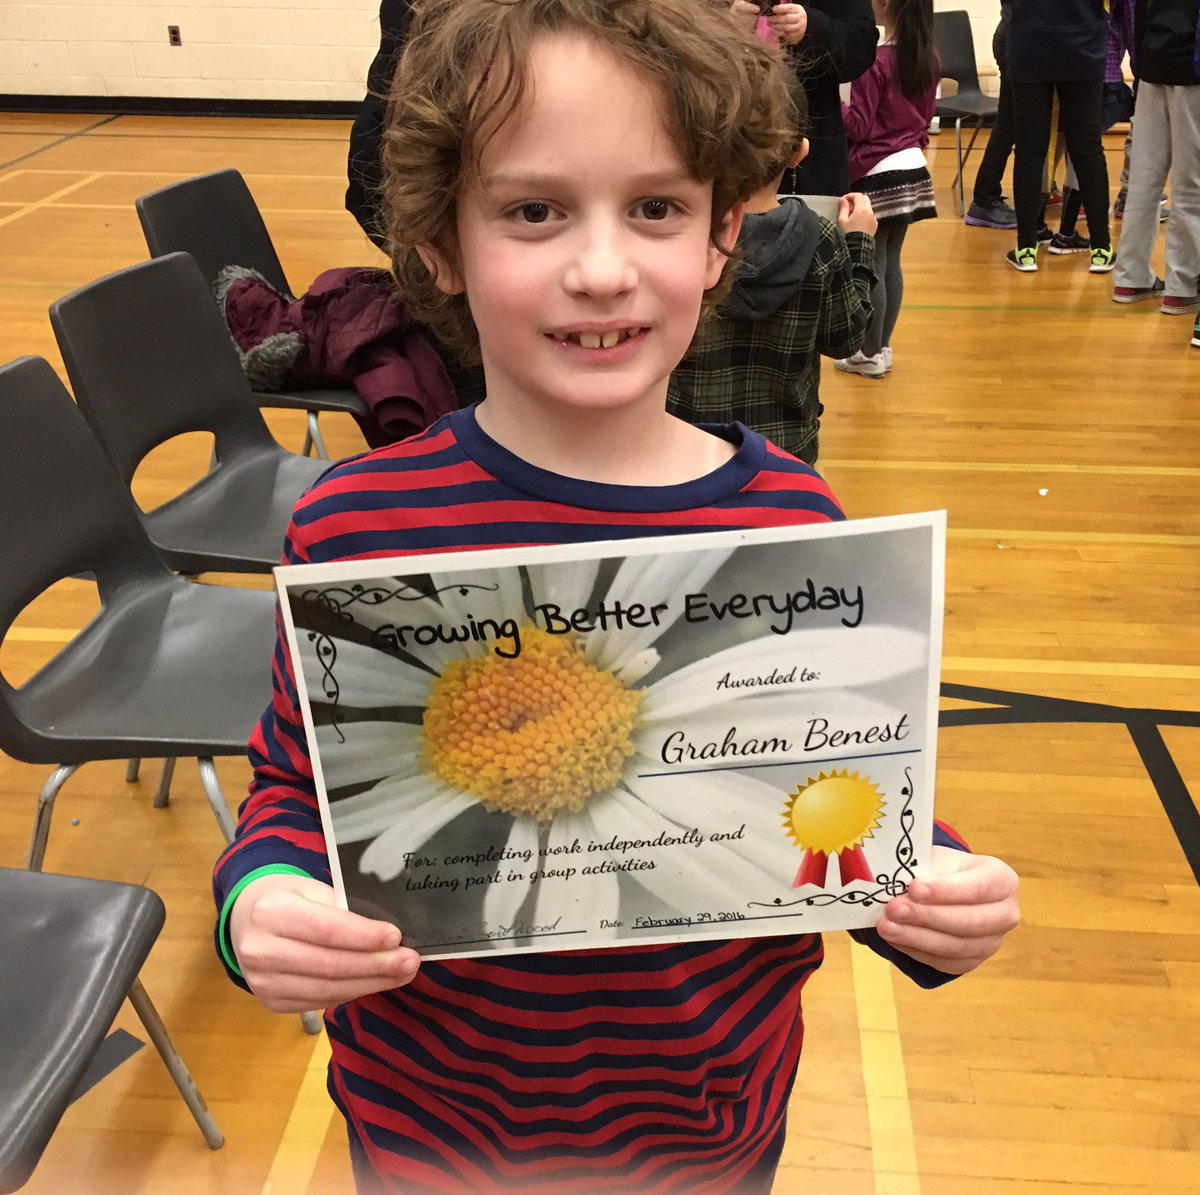 My son got an award at school today Angelique! #AskAngel @afmarcom https://t.co/BGVVbmeY4T